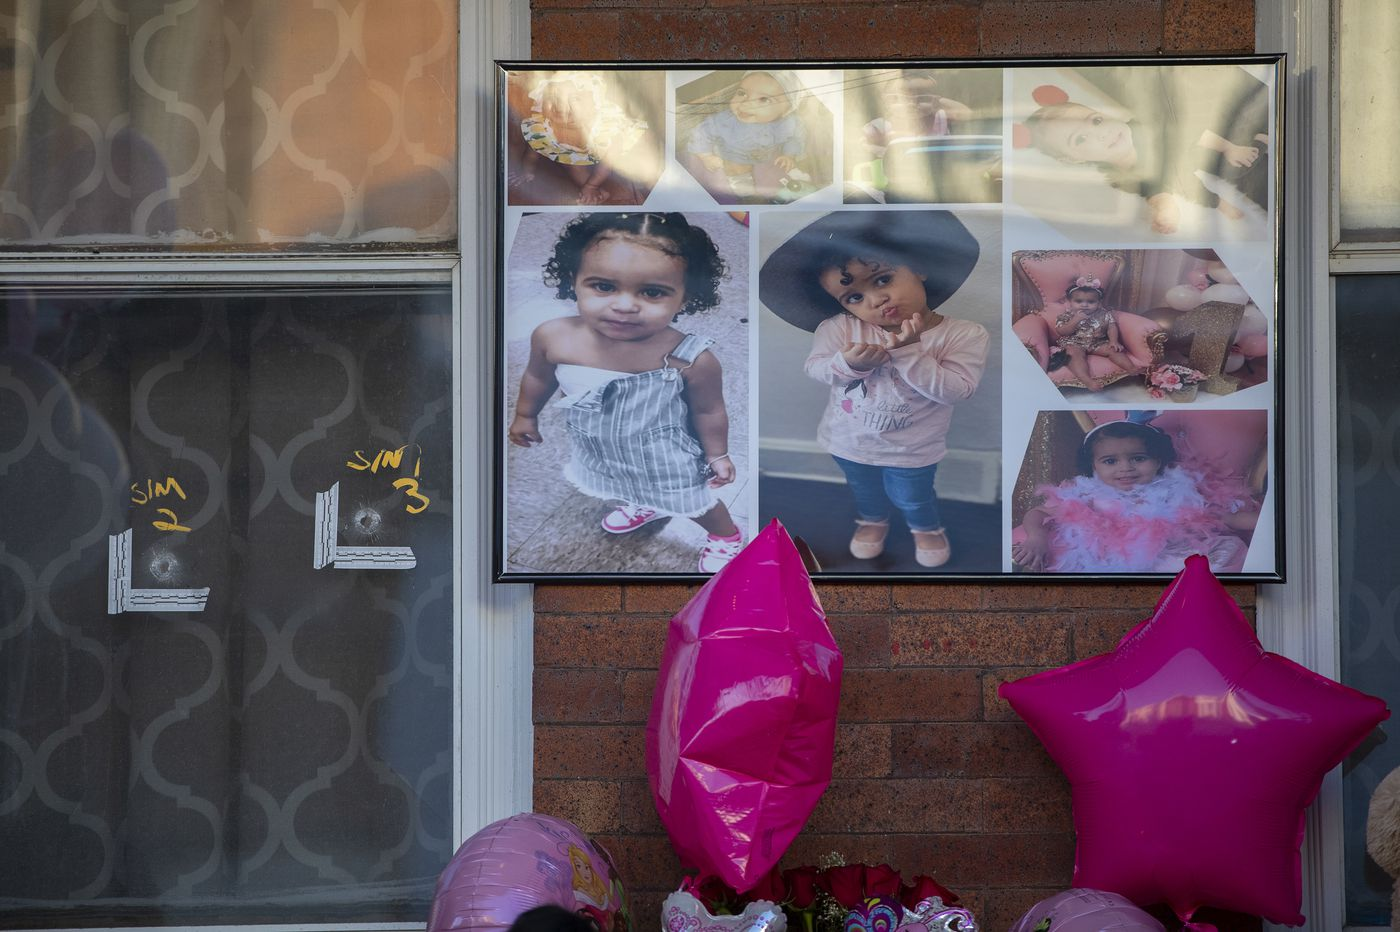 Suspect arrested in shooting death of 2-year-old girl in Philadelphia